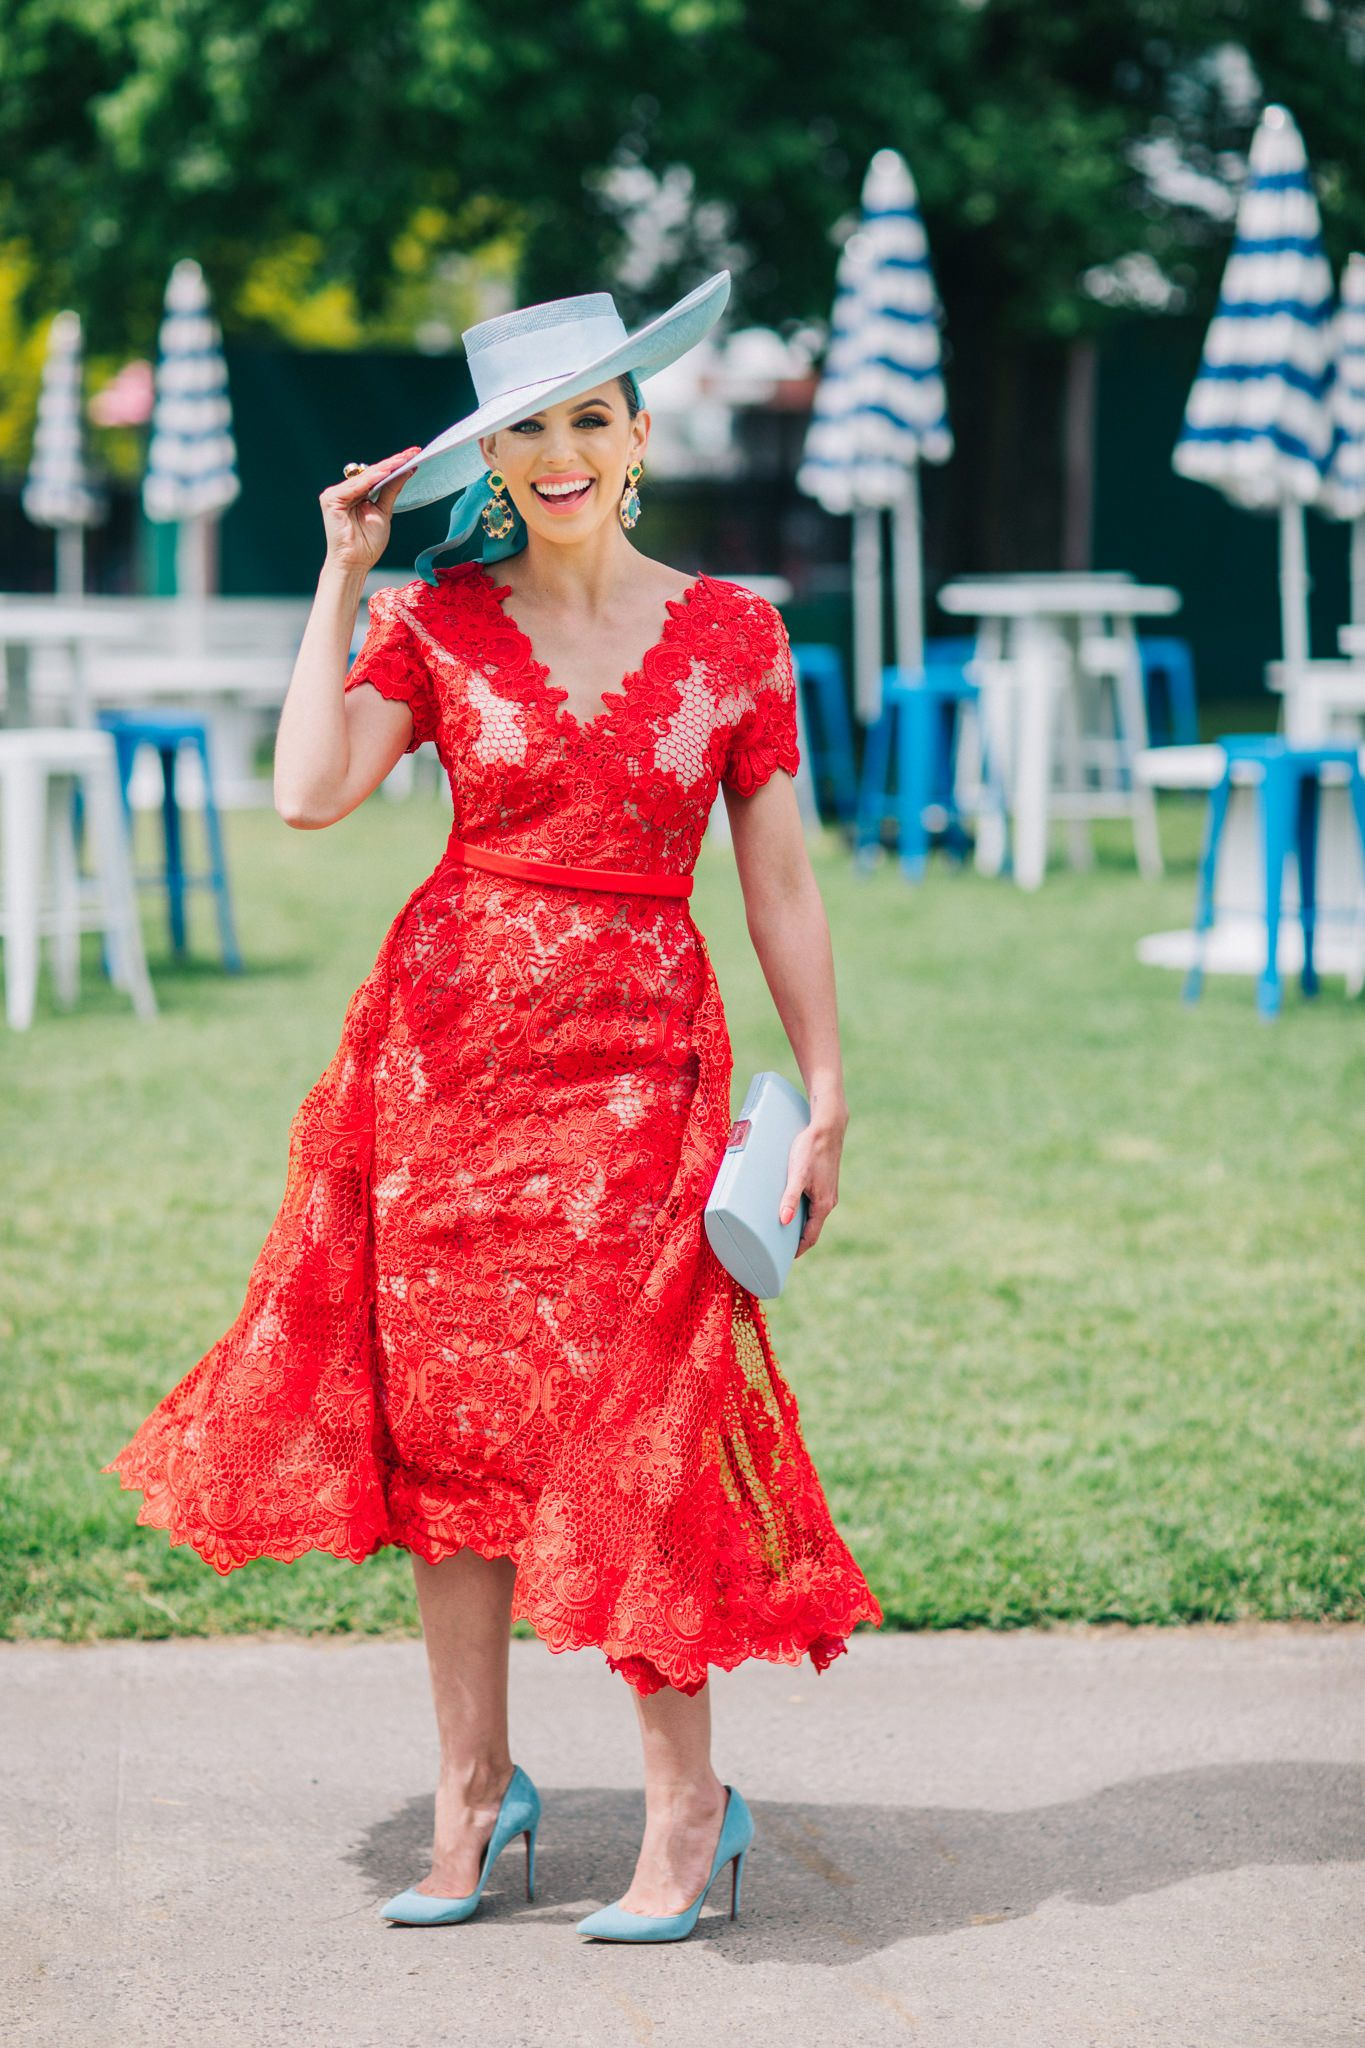 Red Lace Dress Fashions On The Field Winner 2017 Fashion